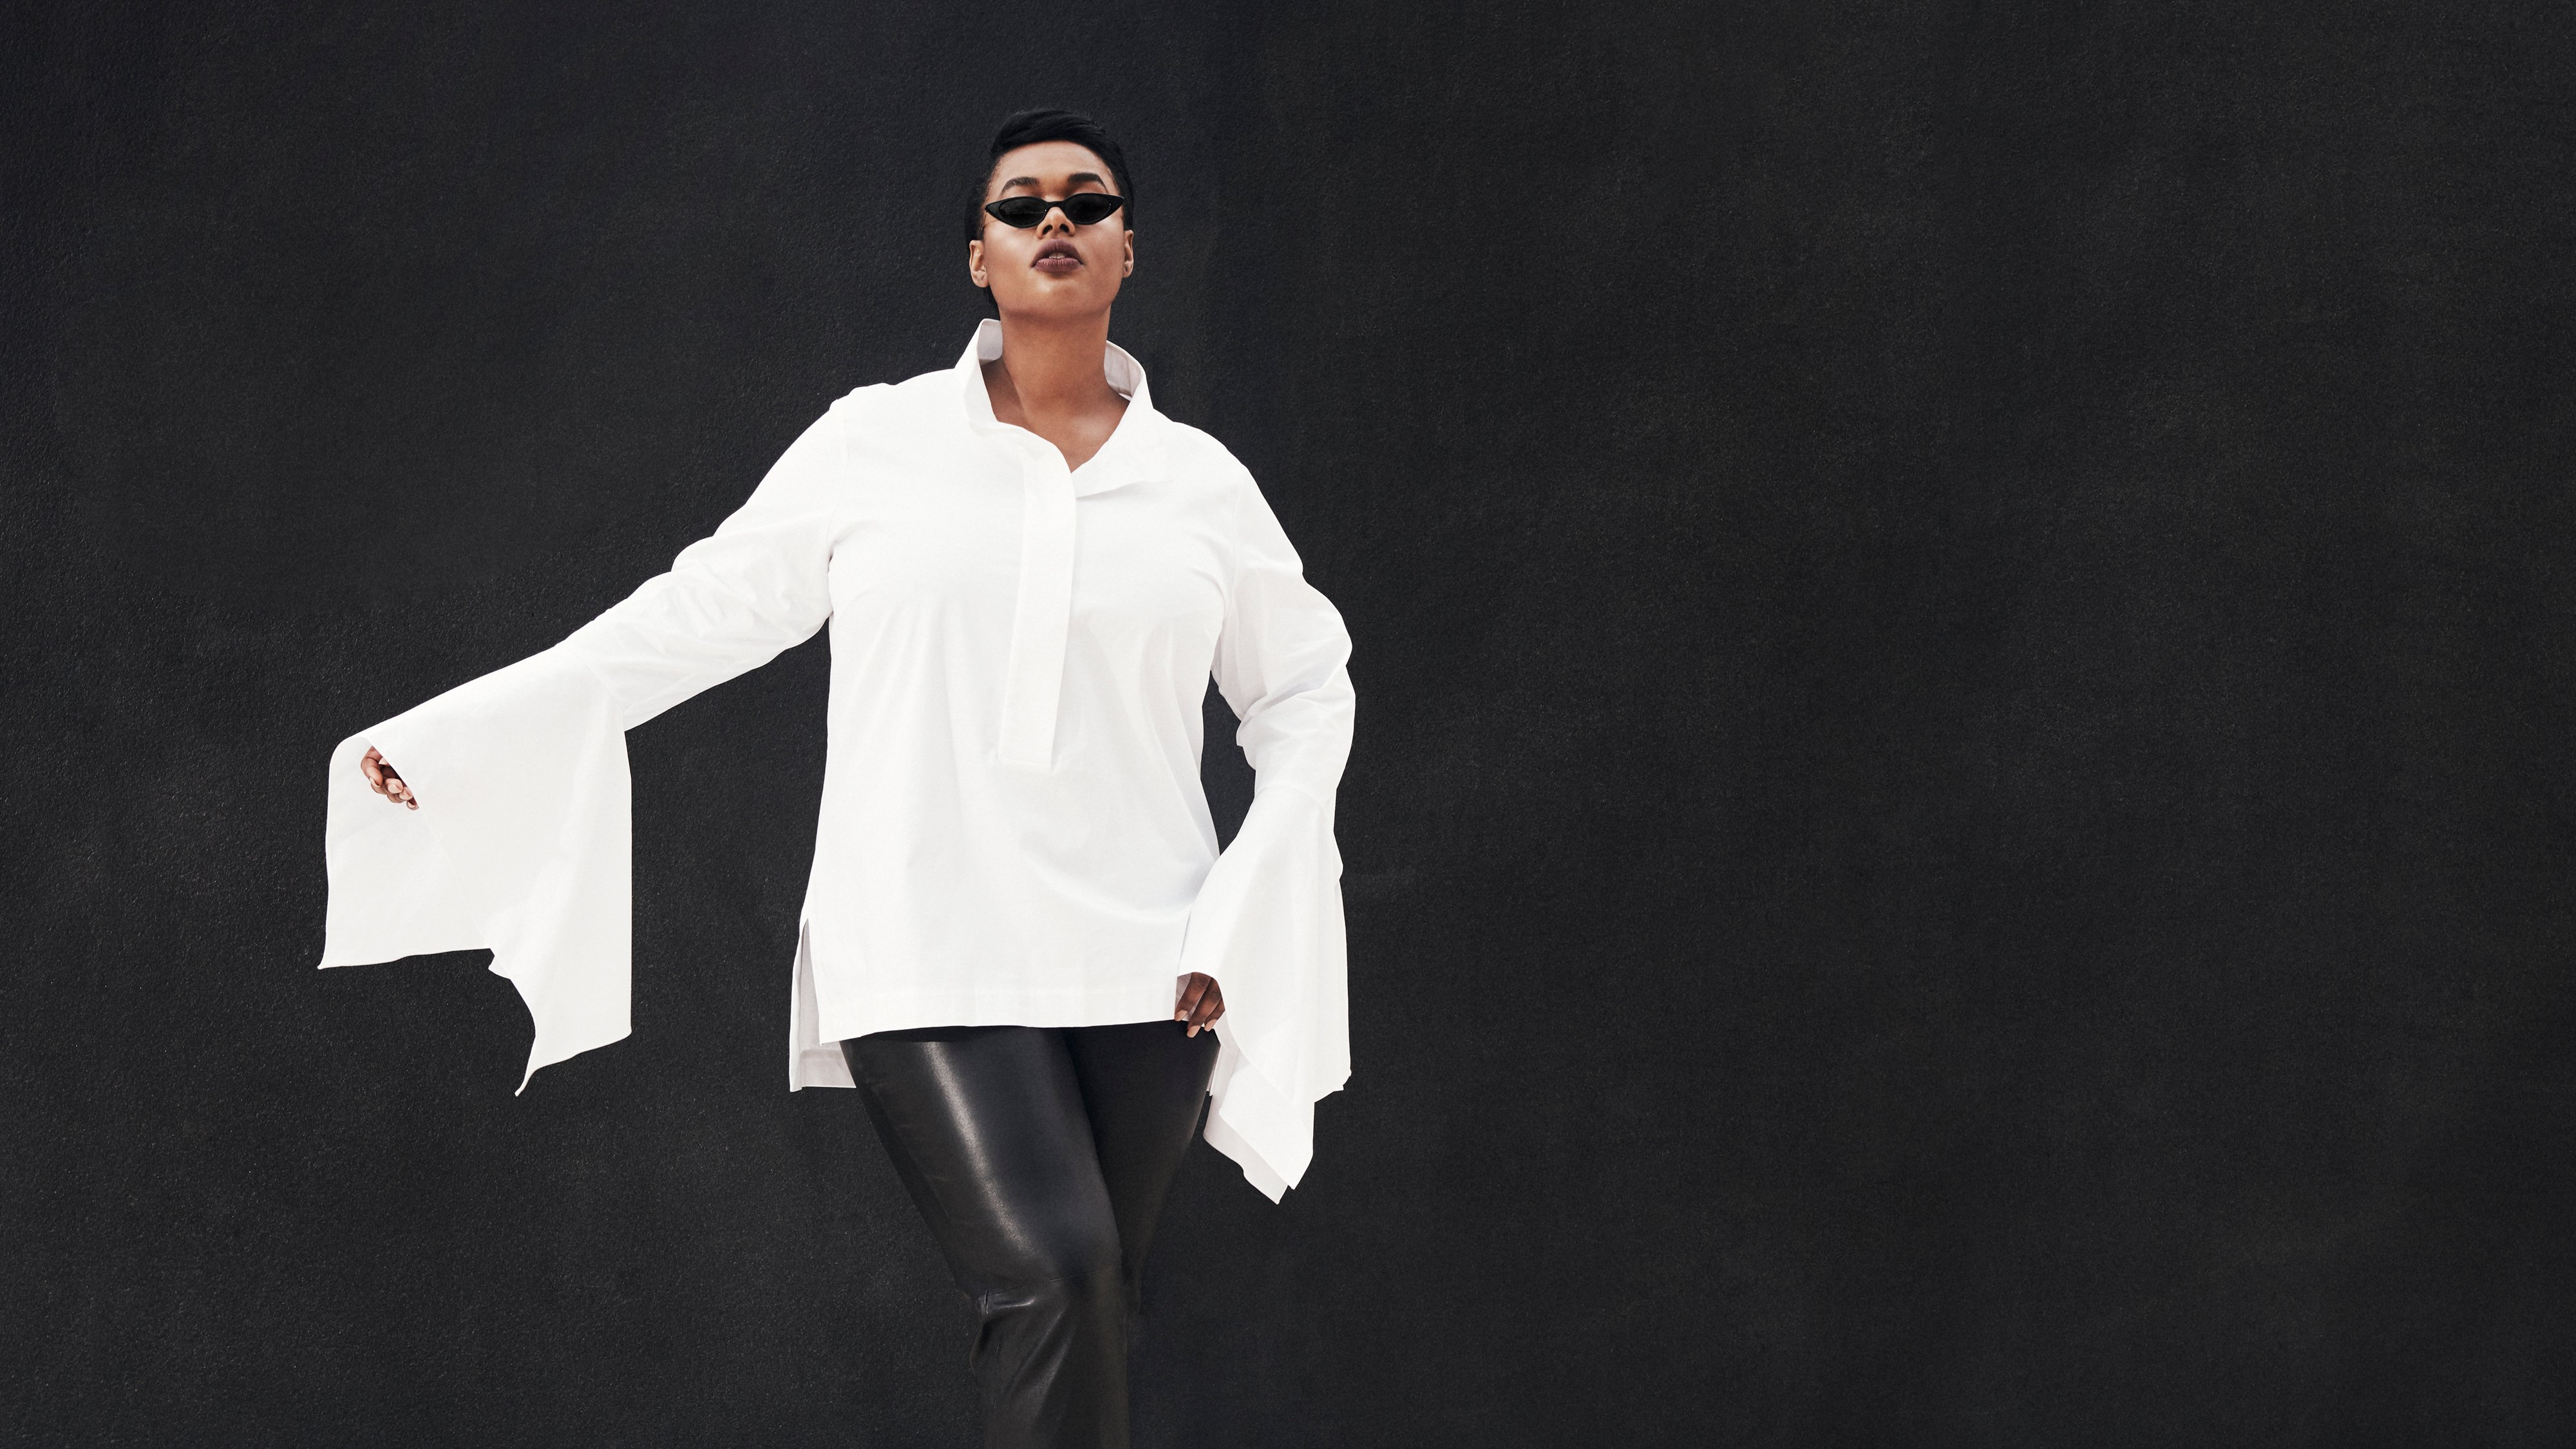 Model Precious Lee wearing white designer shirt and black sunglasses, Ad campaign. Art Direction by RoAndCo